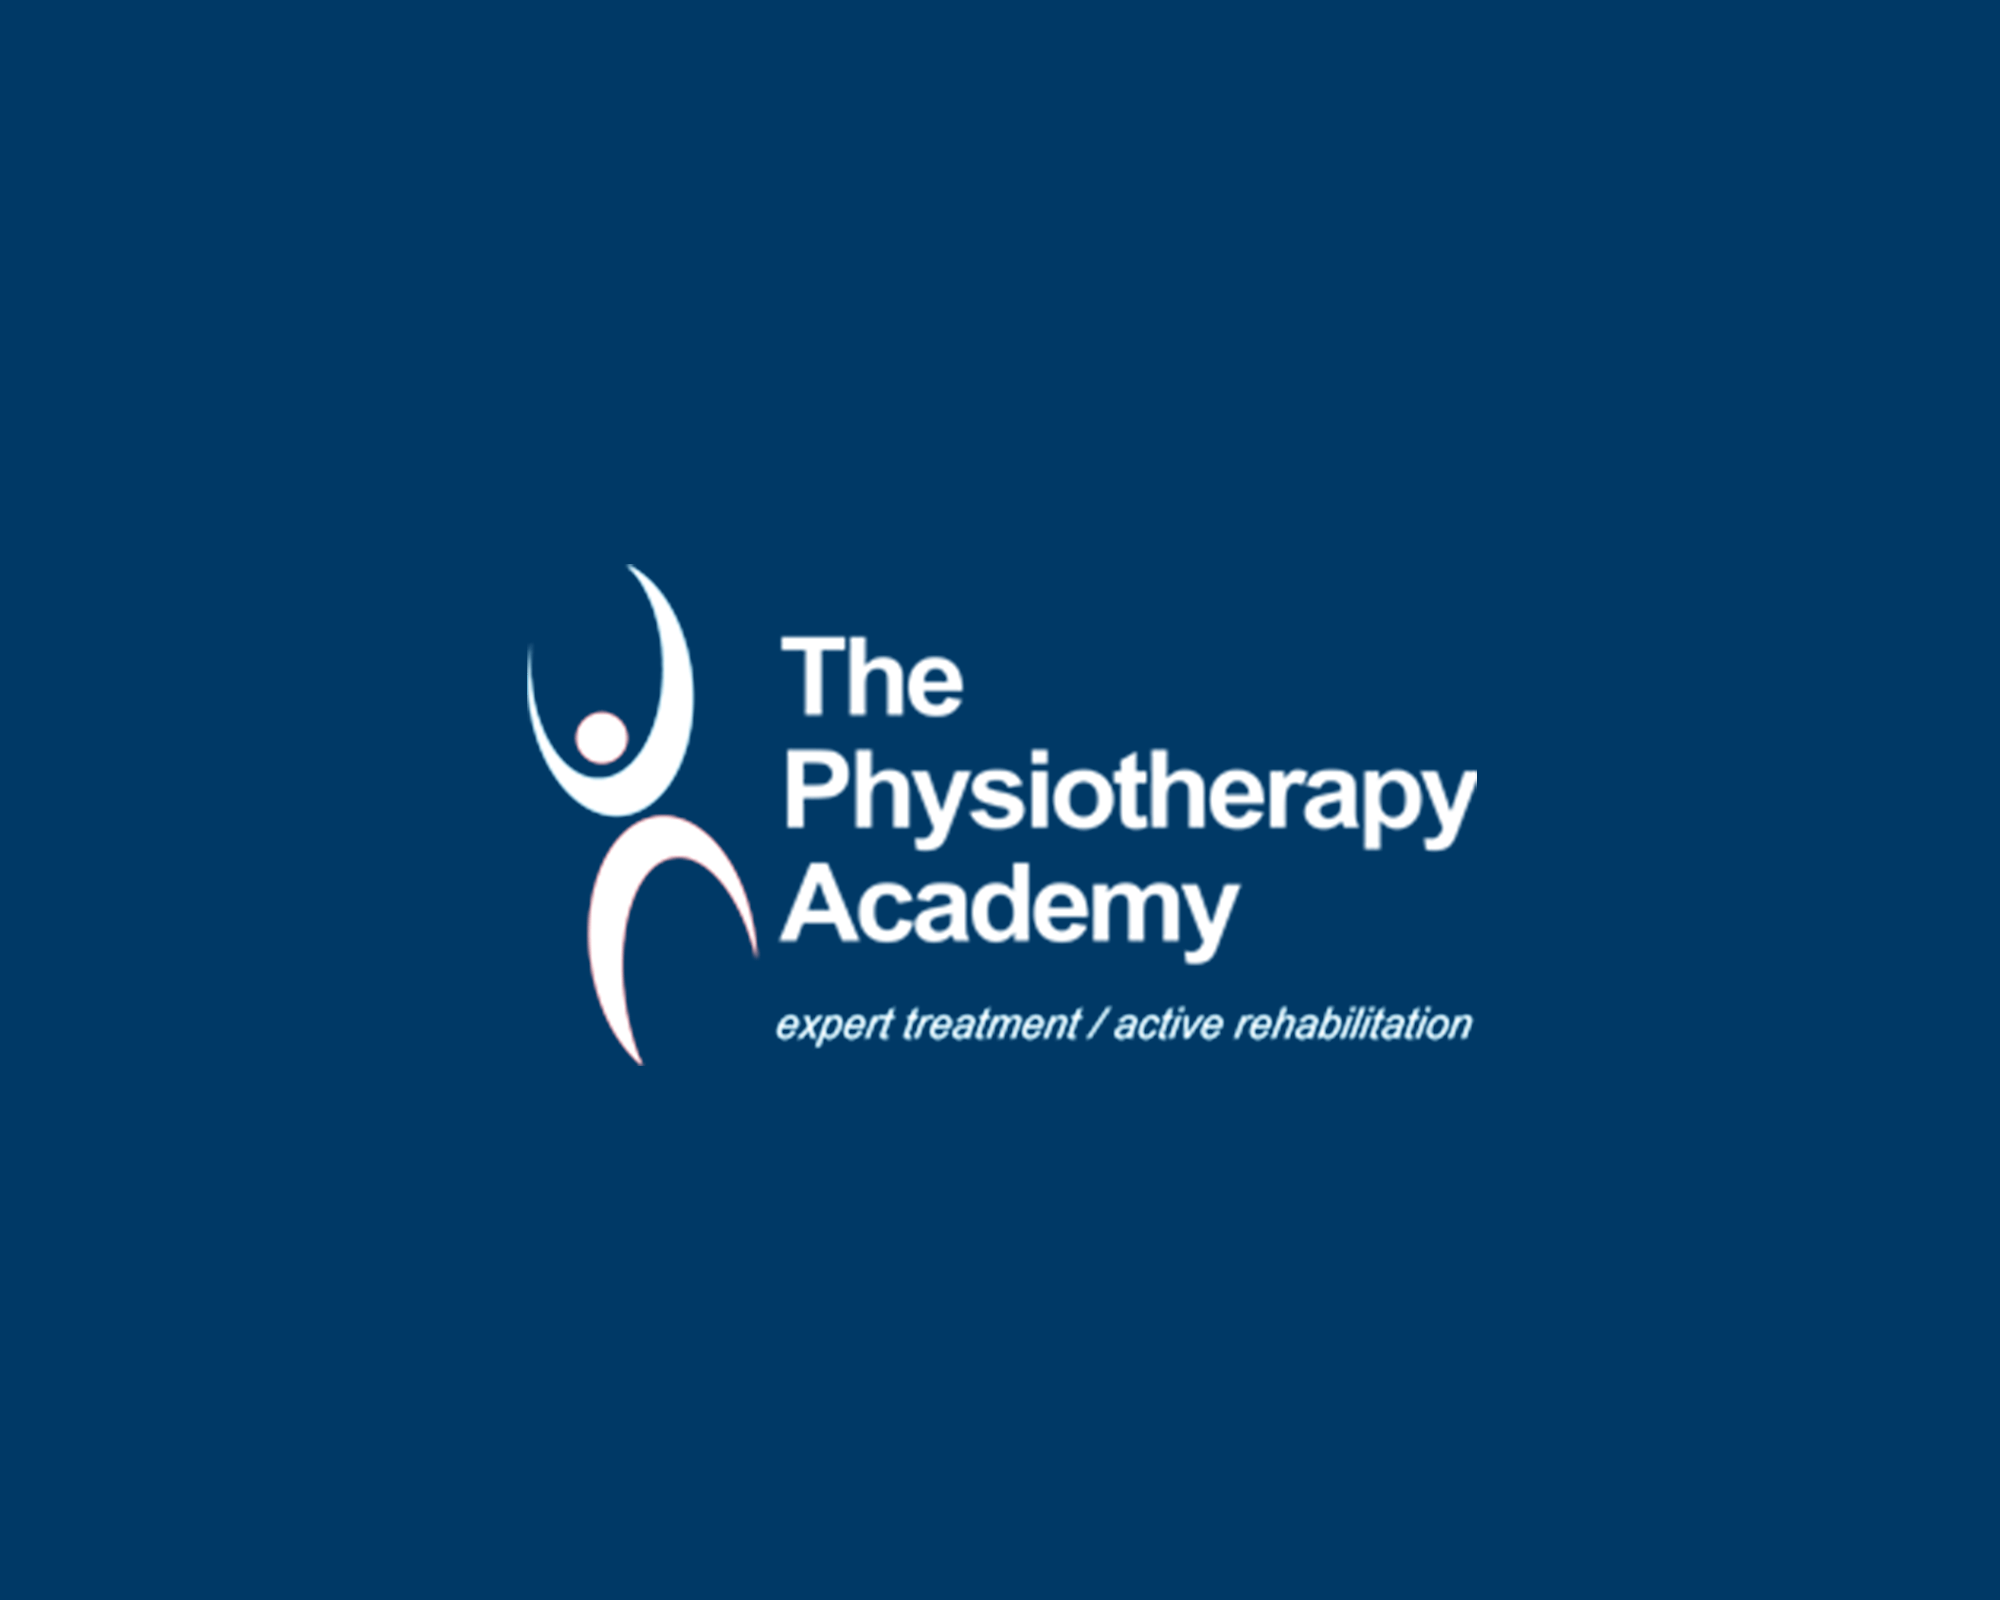 the physiotherapy academy Logo